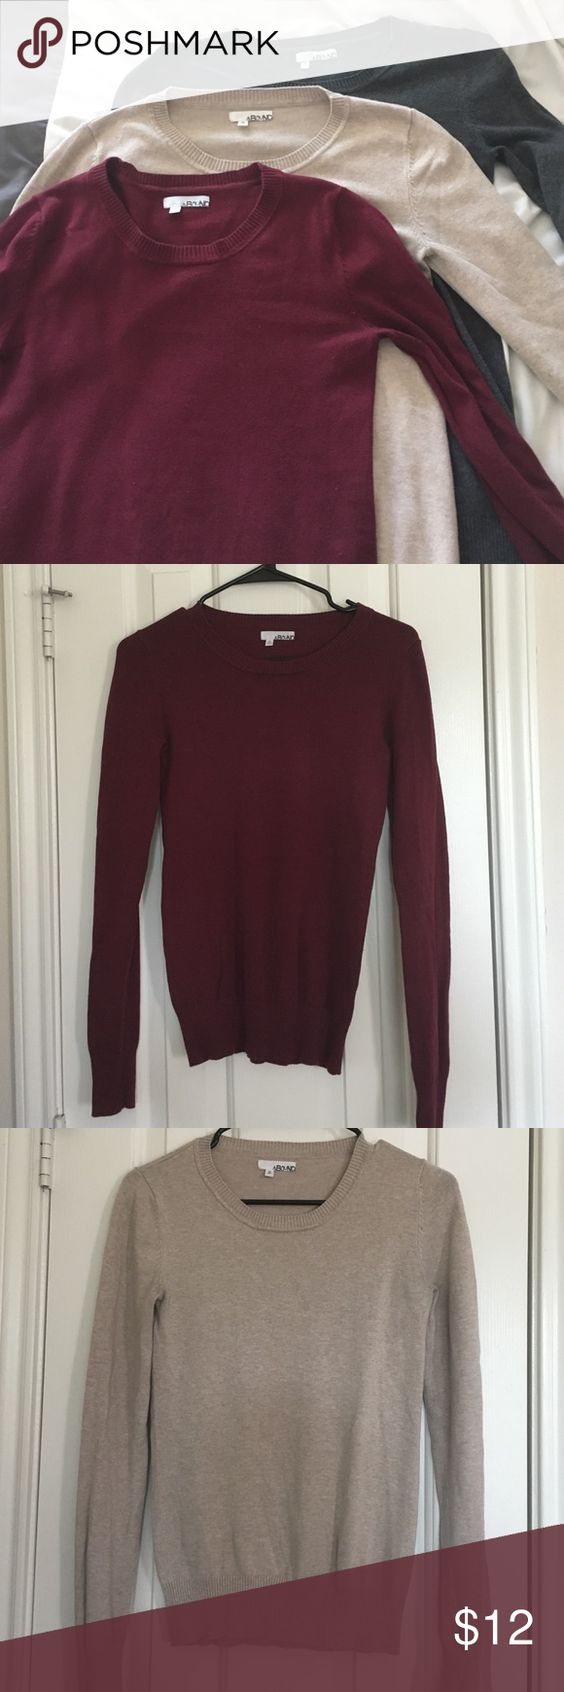 """3 Basic LS Sweaters - Sz M These were purchased from Nordstrom Rack. Colors are charcoal, beige and maroon. GUC; fabric does show wear in some places and the beige one has some slight discoloration under the arms from being worn with a black cardigan. Overall still good shape and no holes. Measurements: 23"""" shoulder to hem, 26"""" sleeves, 15"""" across armpits. Would likely fit a S/XS best. $5 individually or $12 for all 3.    📦✨Part of my closet-clean out sale - feel free to make offers and ask…"""